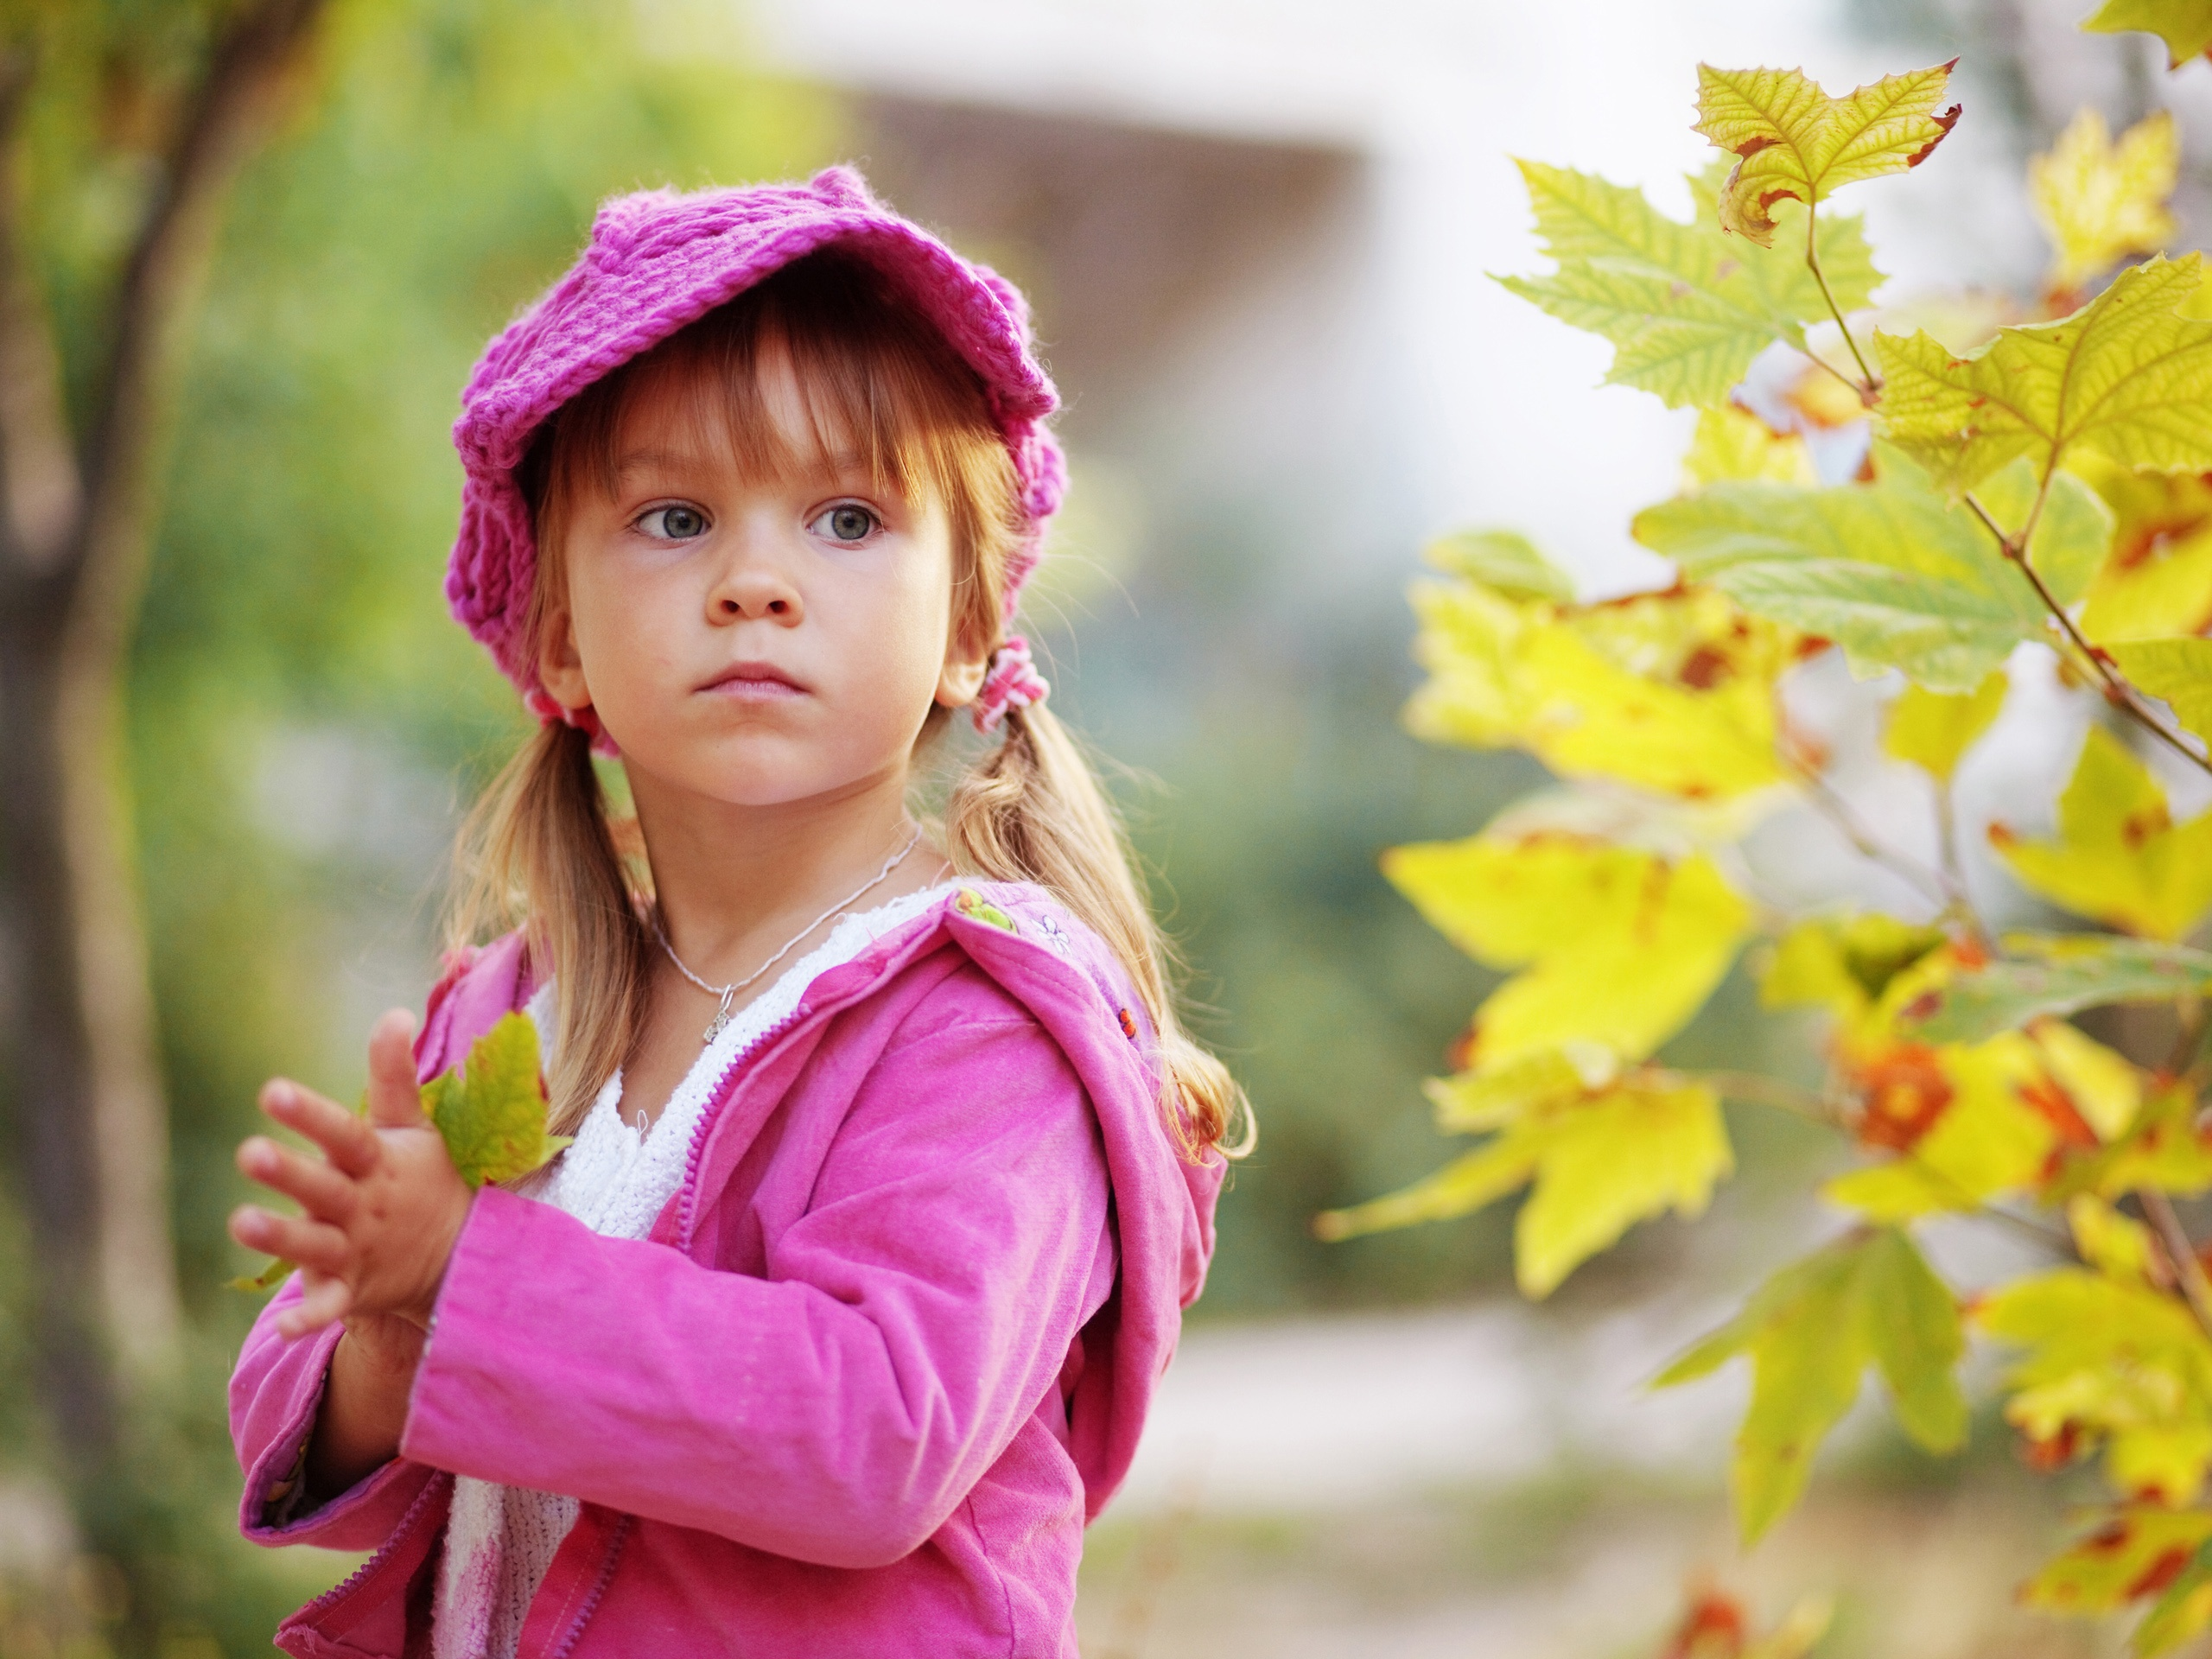 Download Wallpaper 2560x1920 Cute Little Girl Holding A